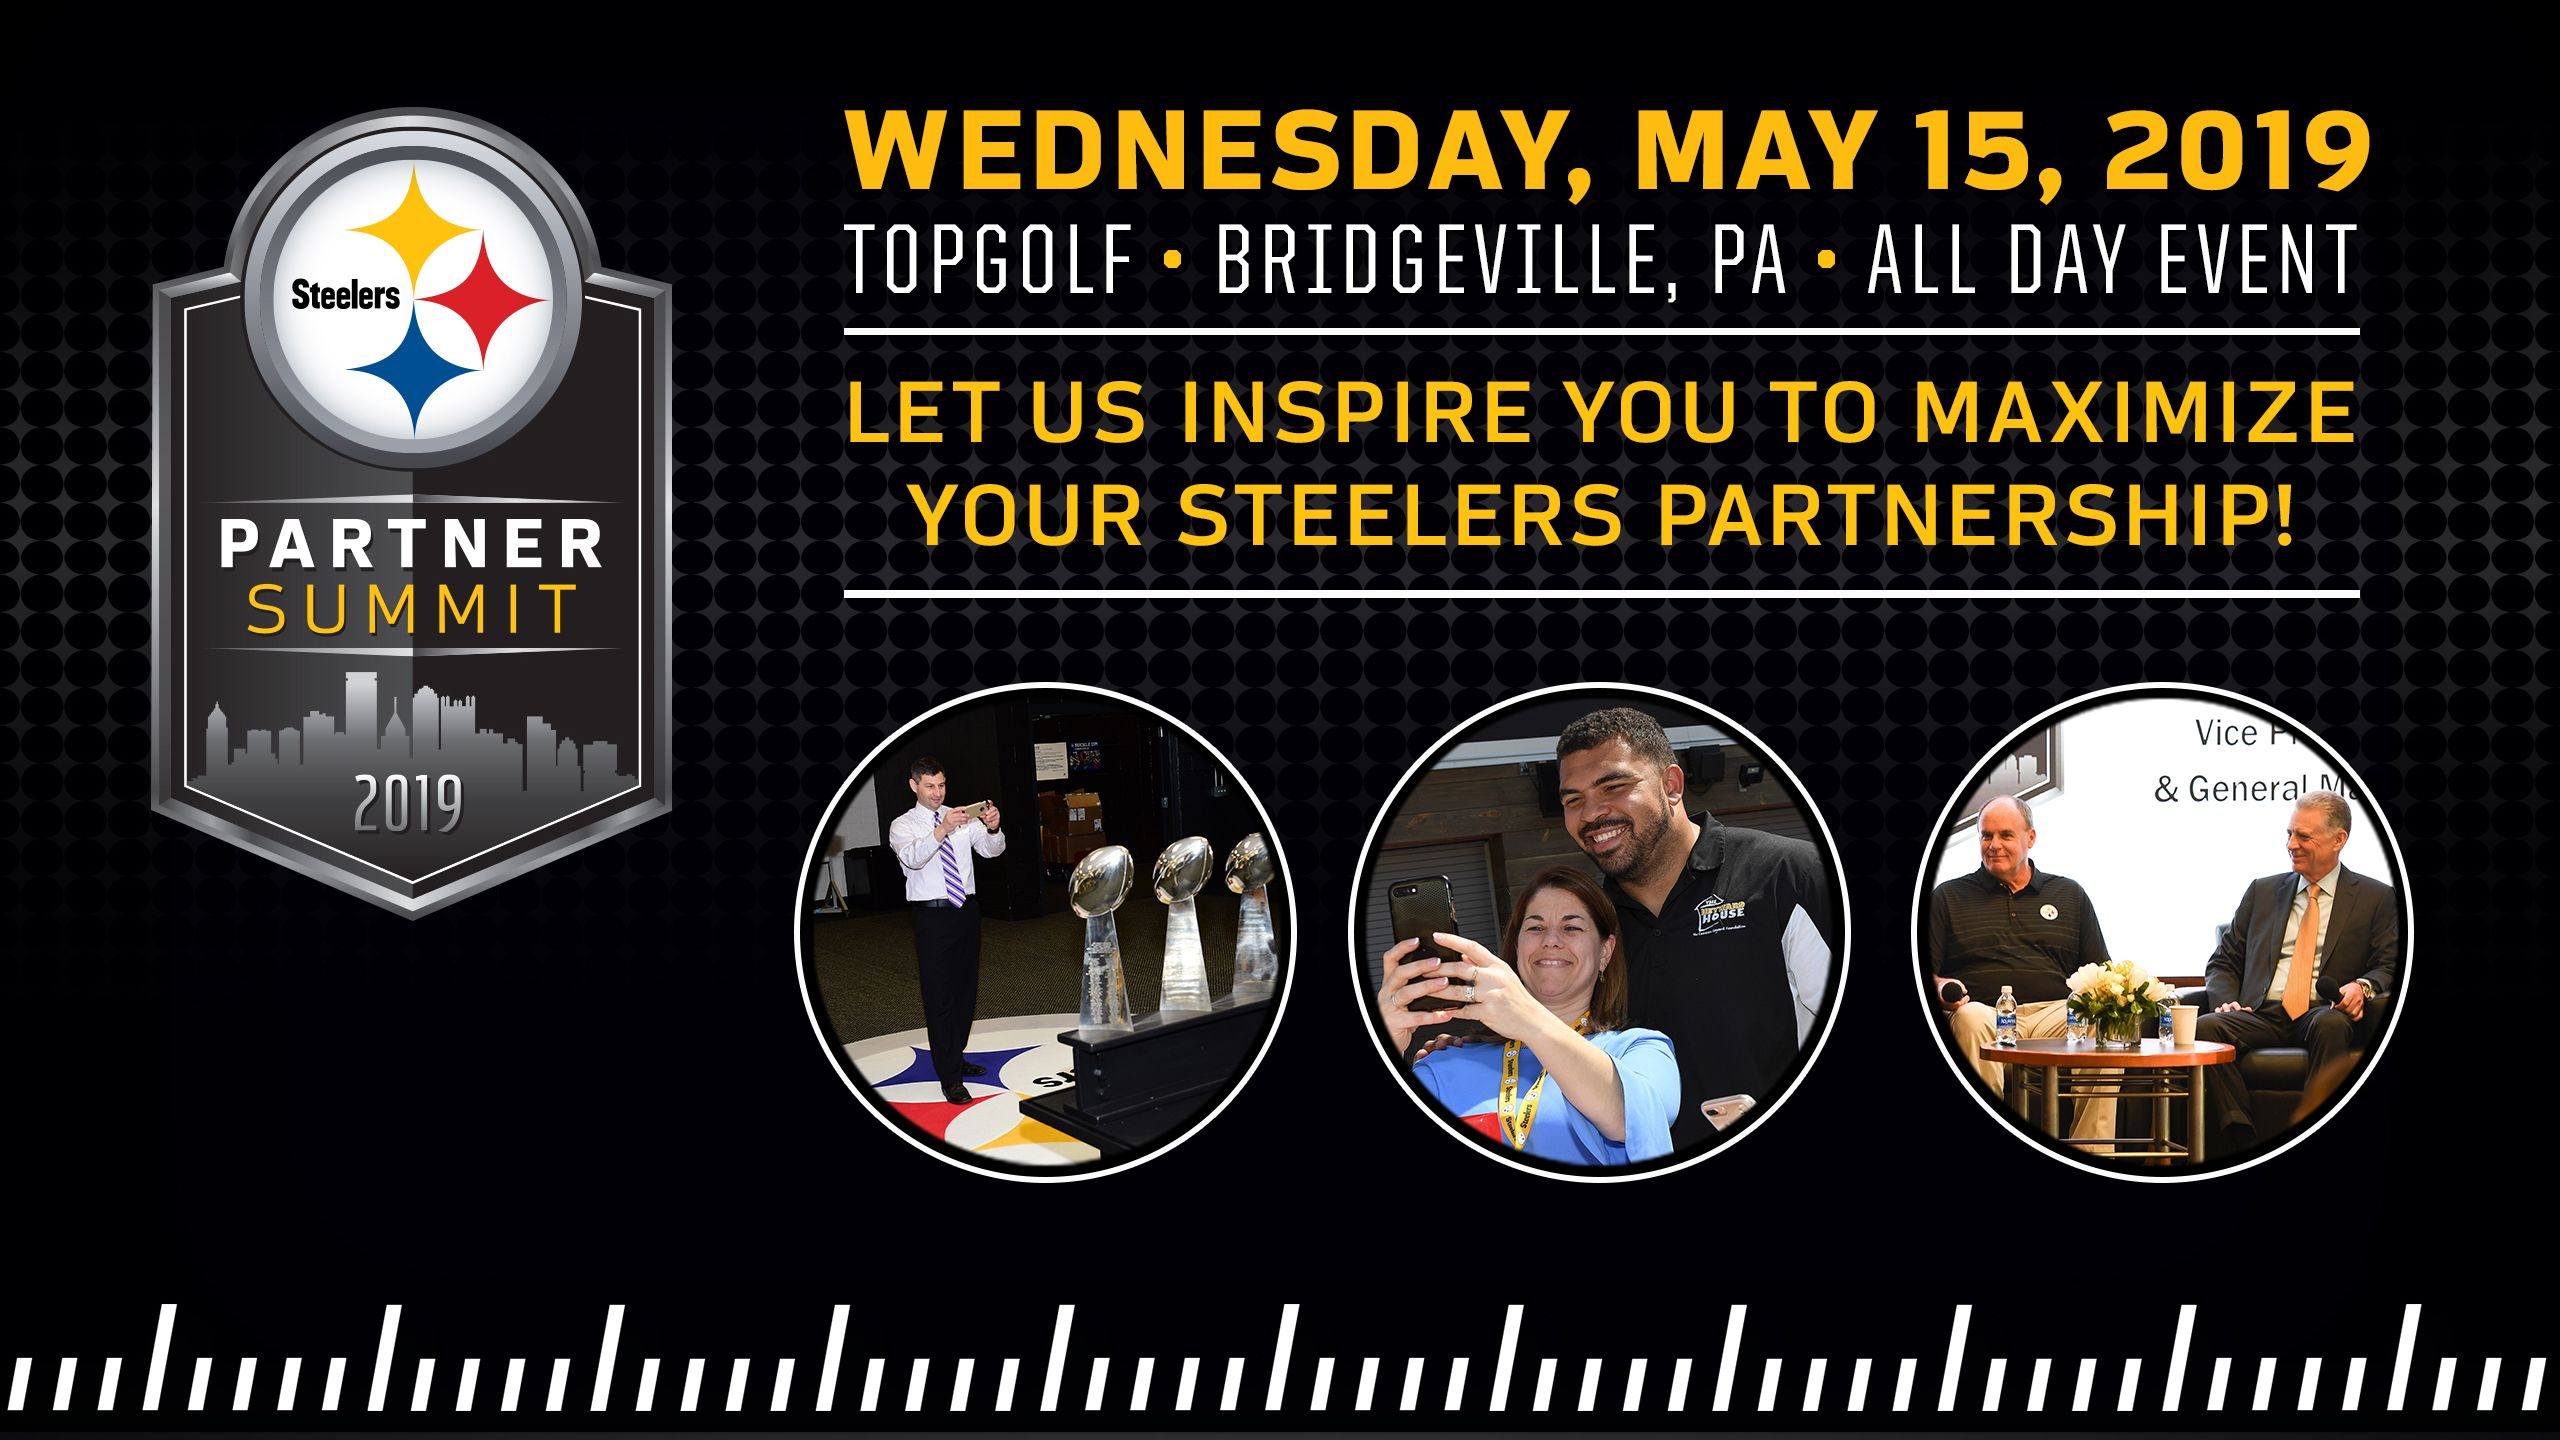 Steelers_Partner_Summit_Registration_19